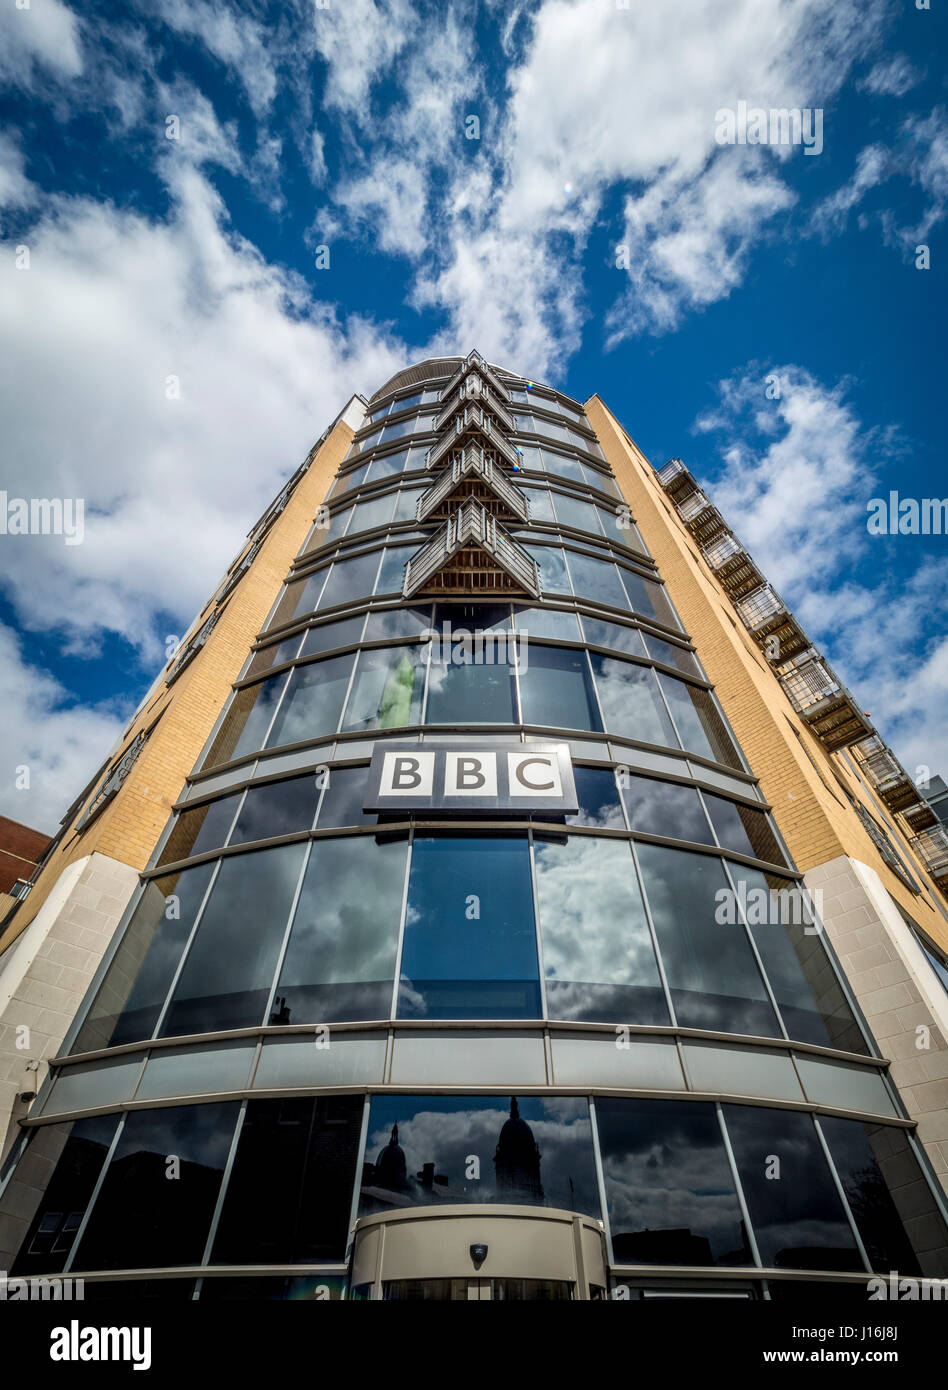 BBC sign on front of Queen's Court building, Hull, UK. - Stock Image